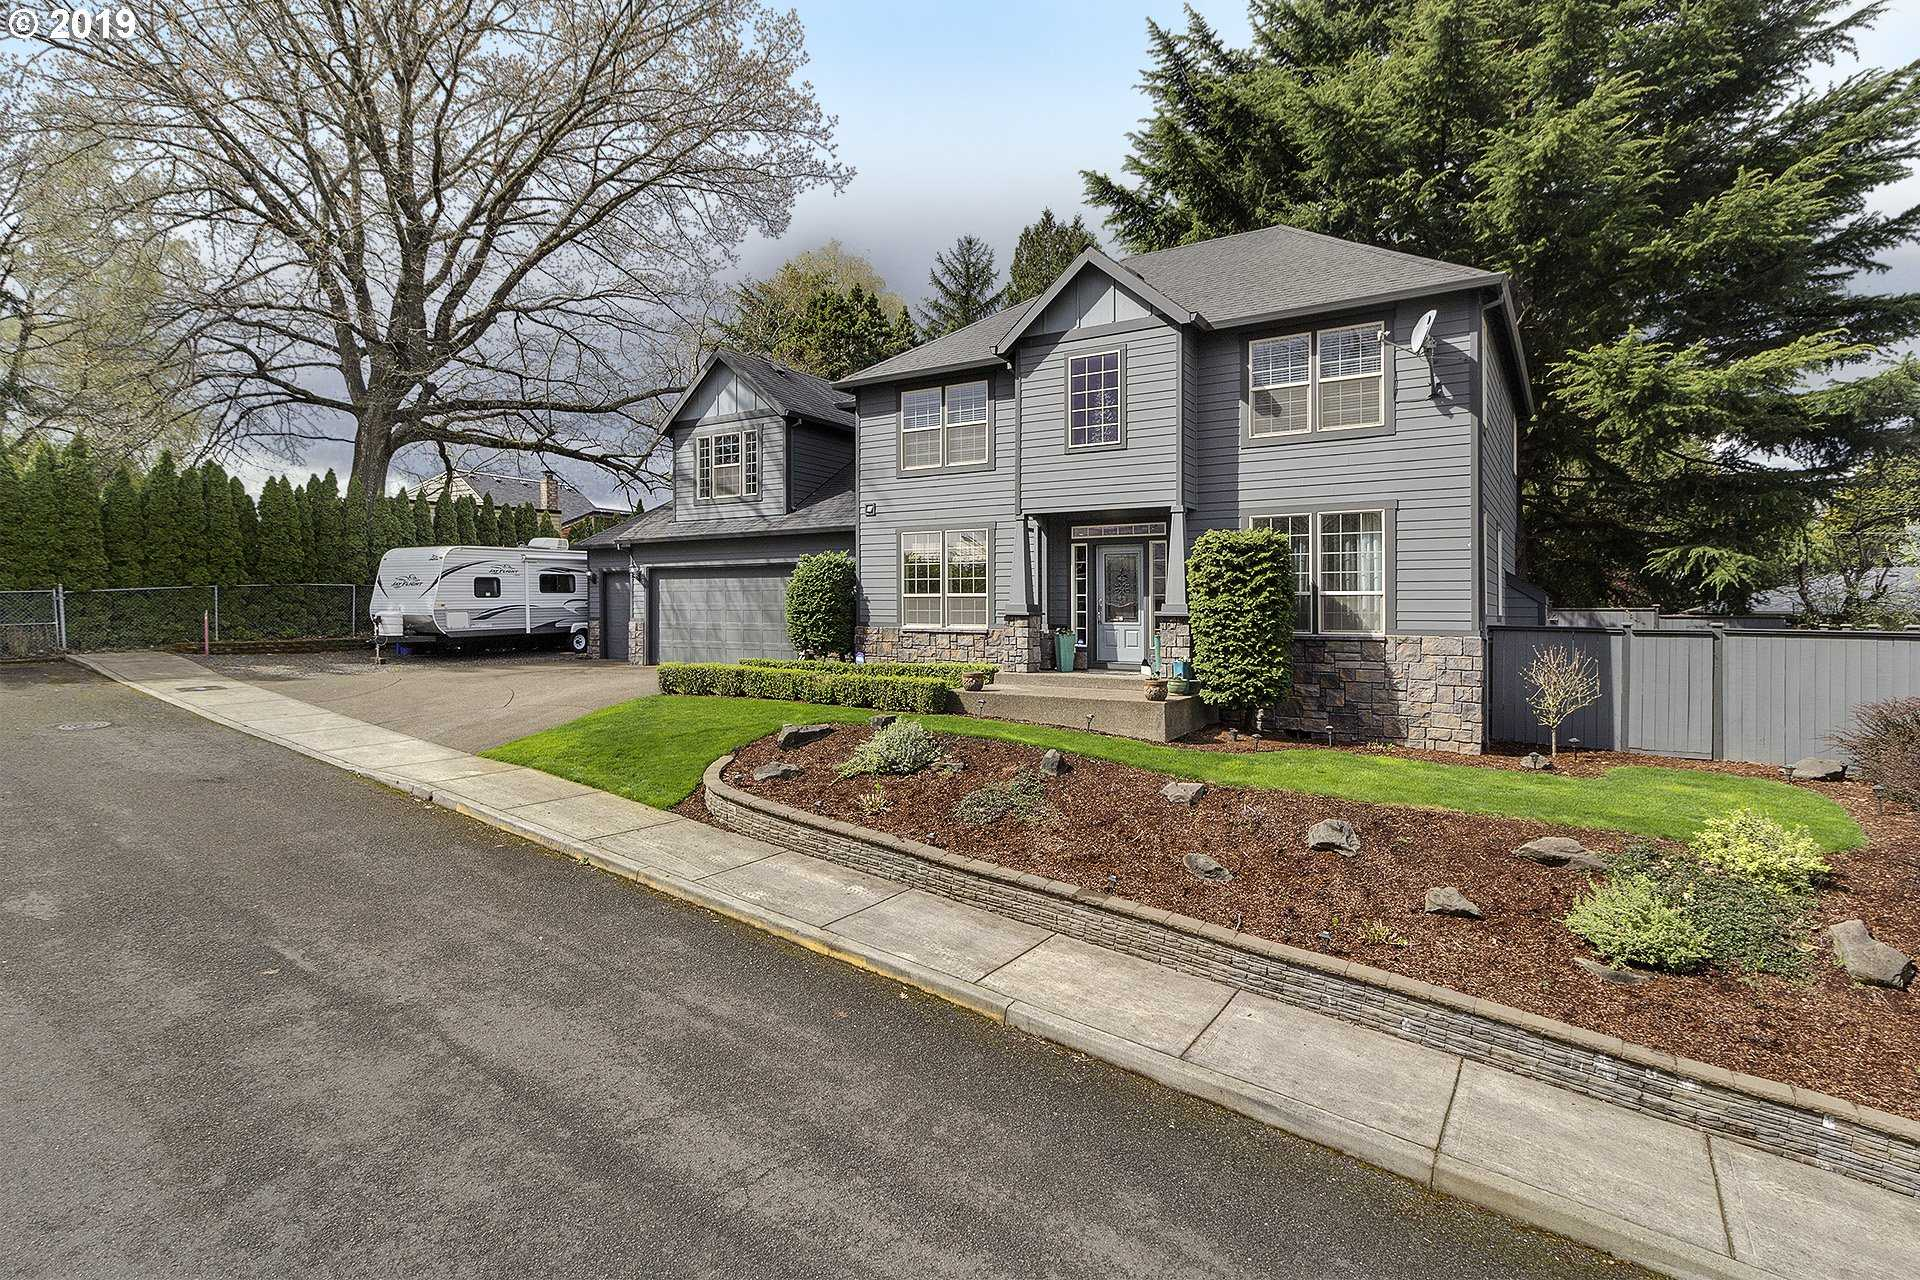 $550,000 - 5Br/3Ba -  for Sale in Milwaukie